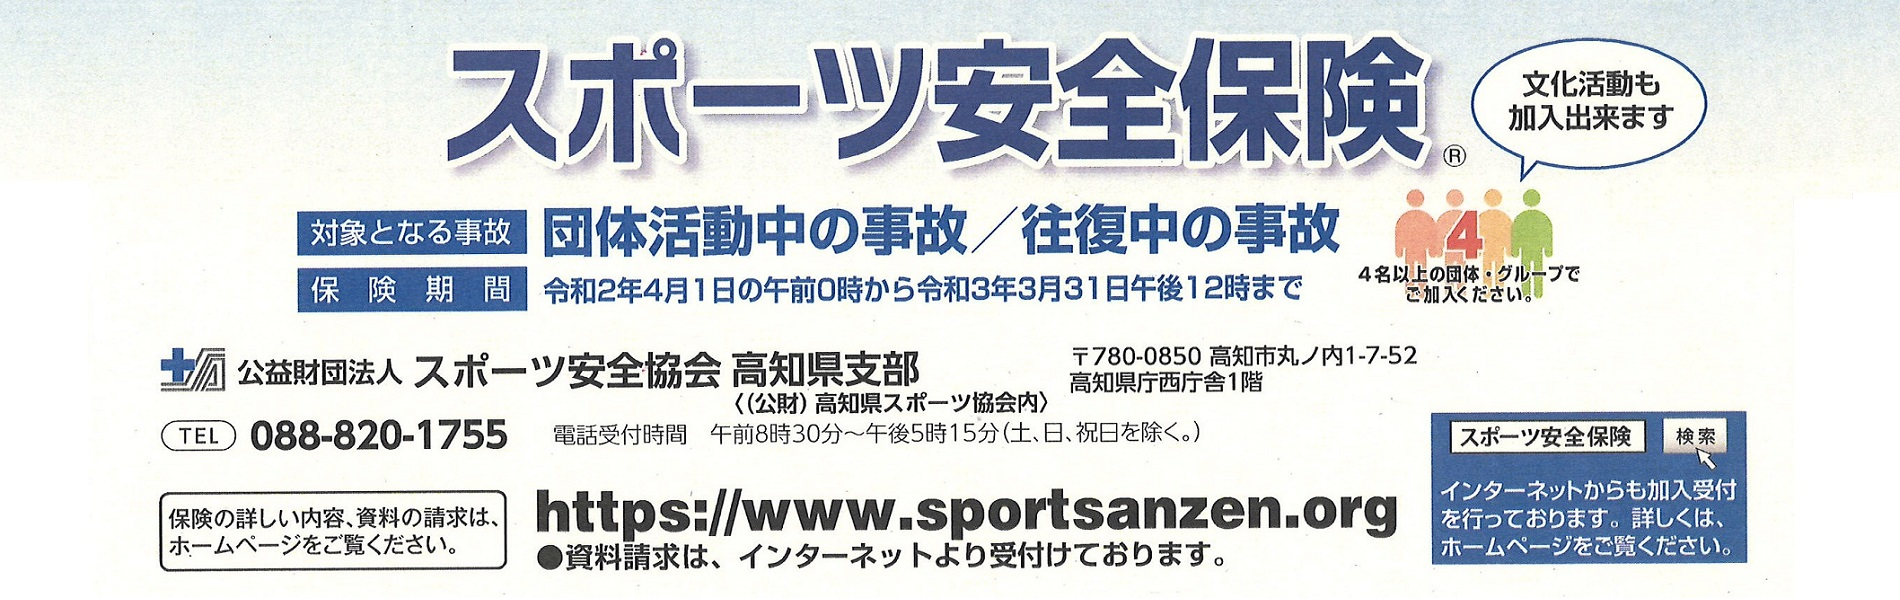 https://www.kc-sports.or.jp/i0002019003/